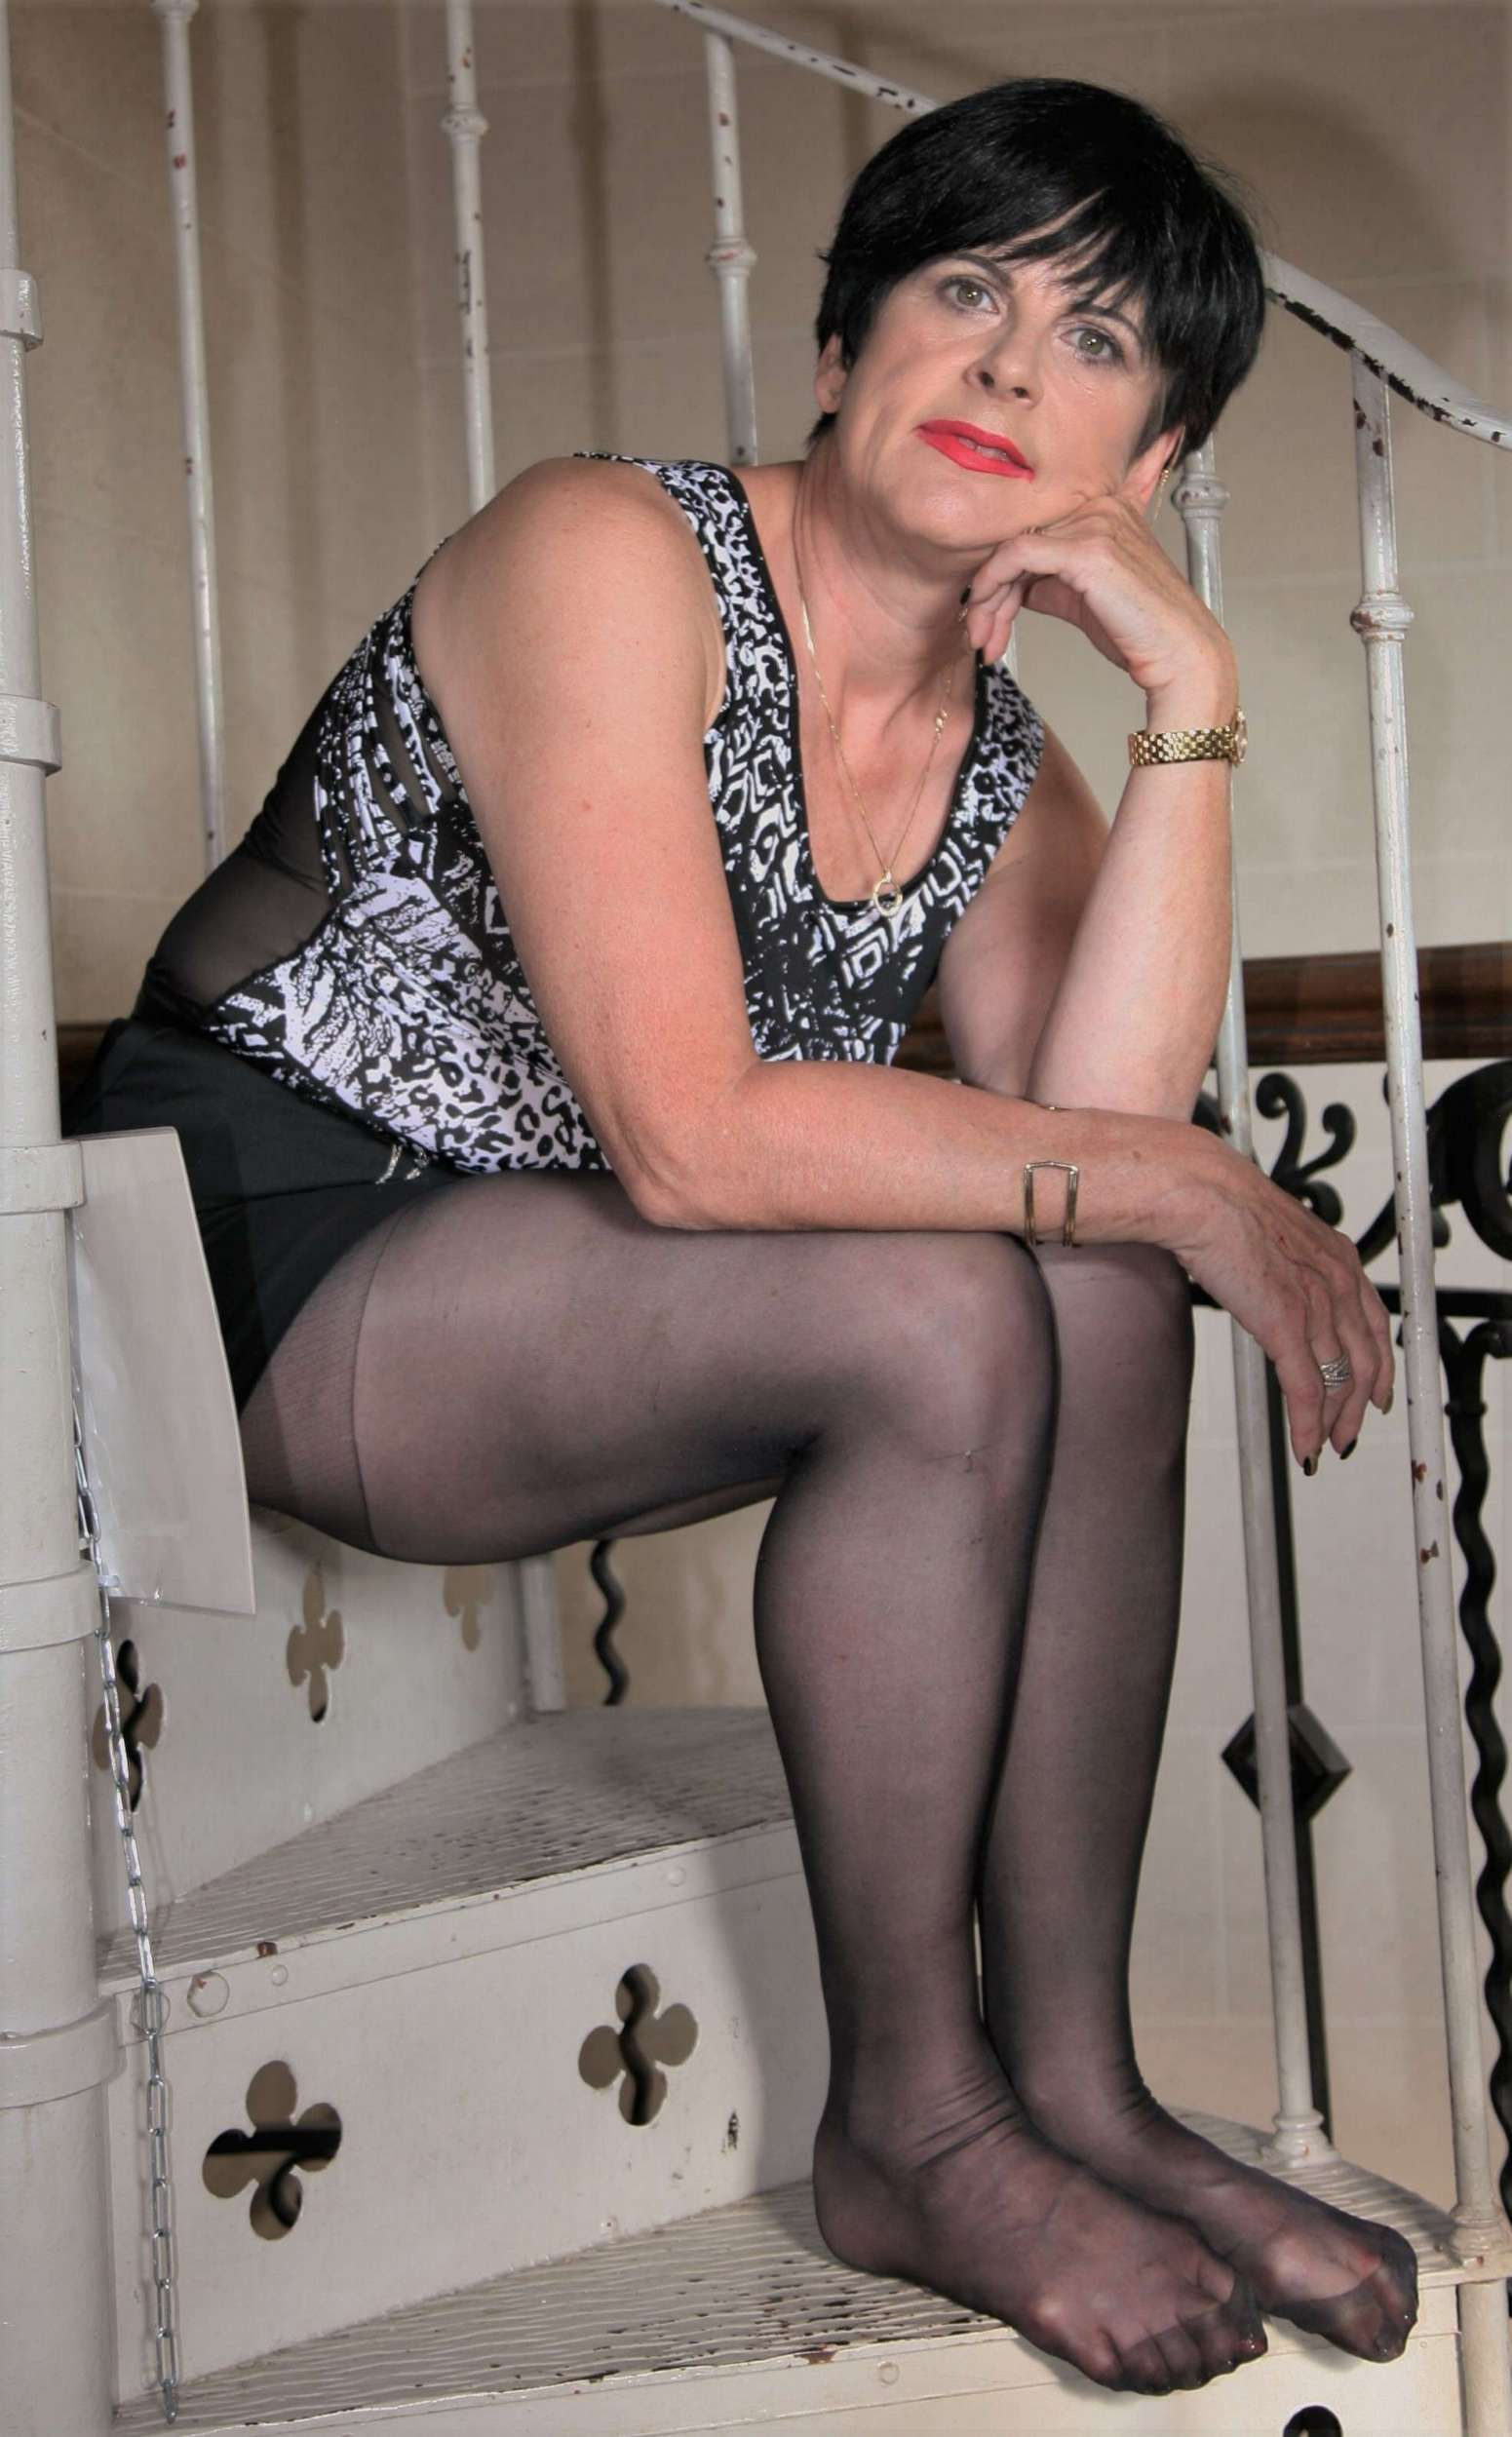 pantyhose candid, the best candid pantyhose pics of the web. a